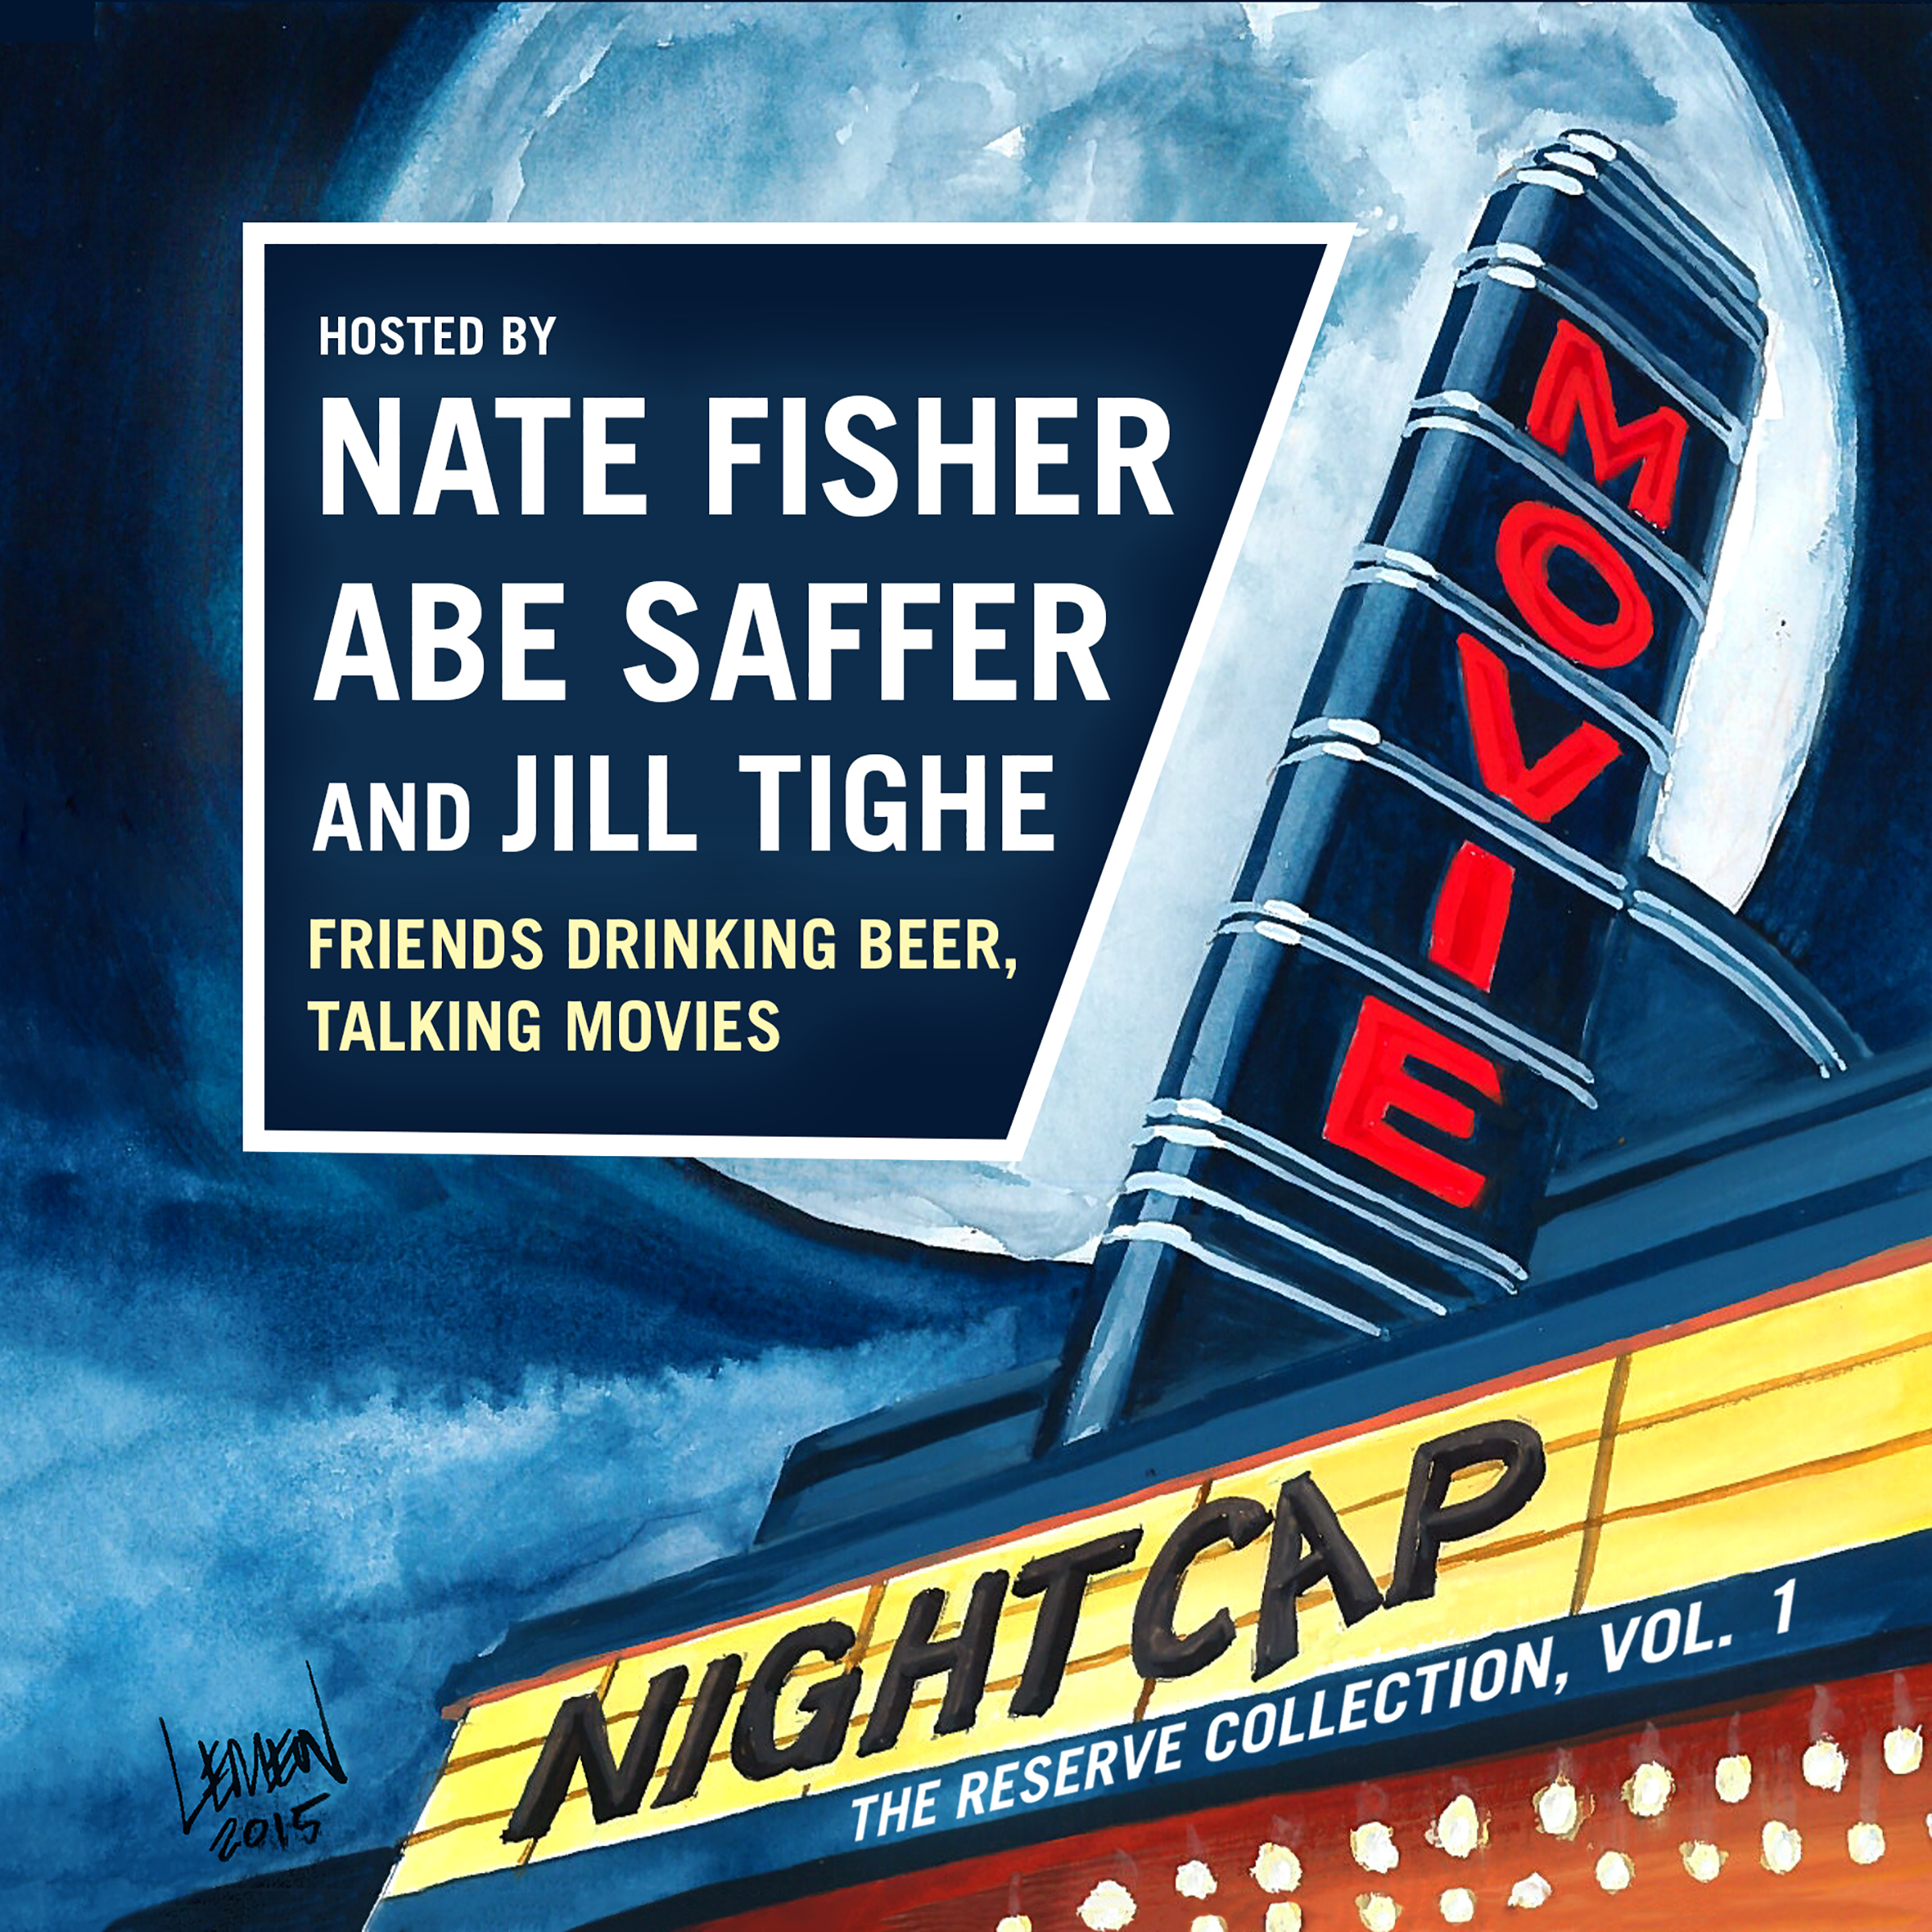 Printable Movie Nightcap: The Reserve Collection, Vol. 1 Audiobook Cover Art